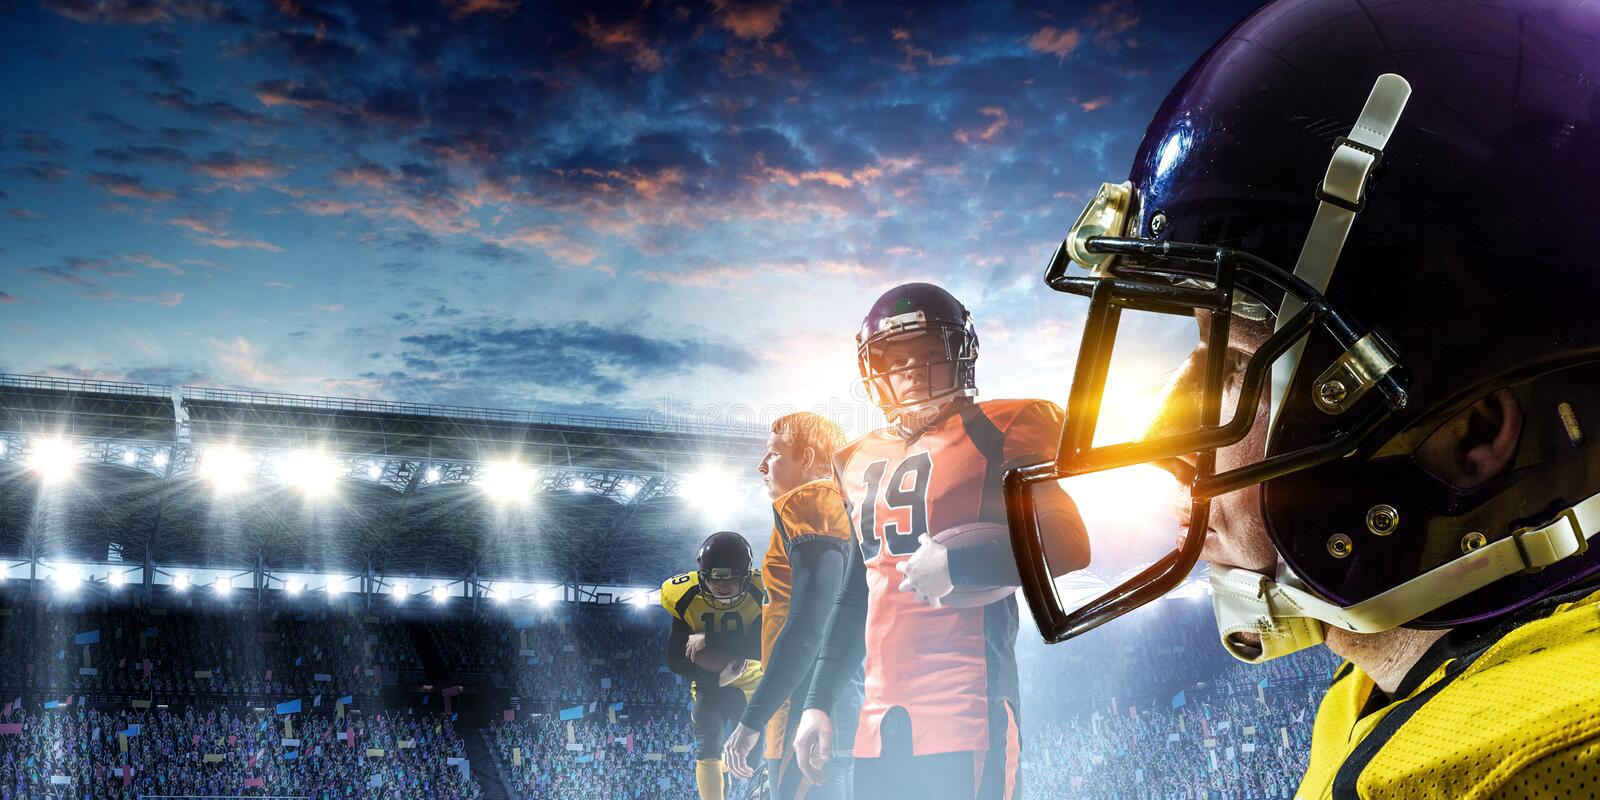 American football players fight for ball. Mixed media royalty free stock photo